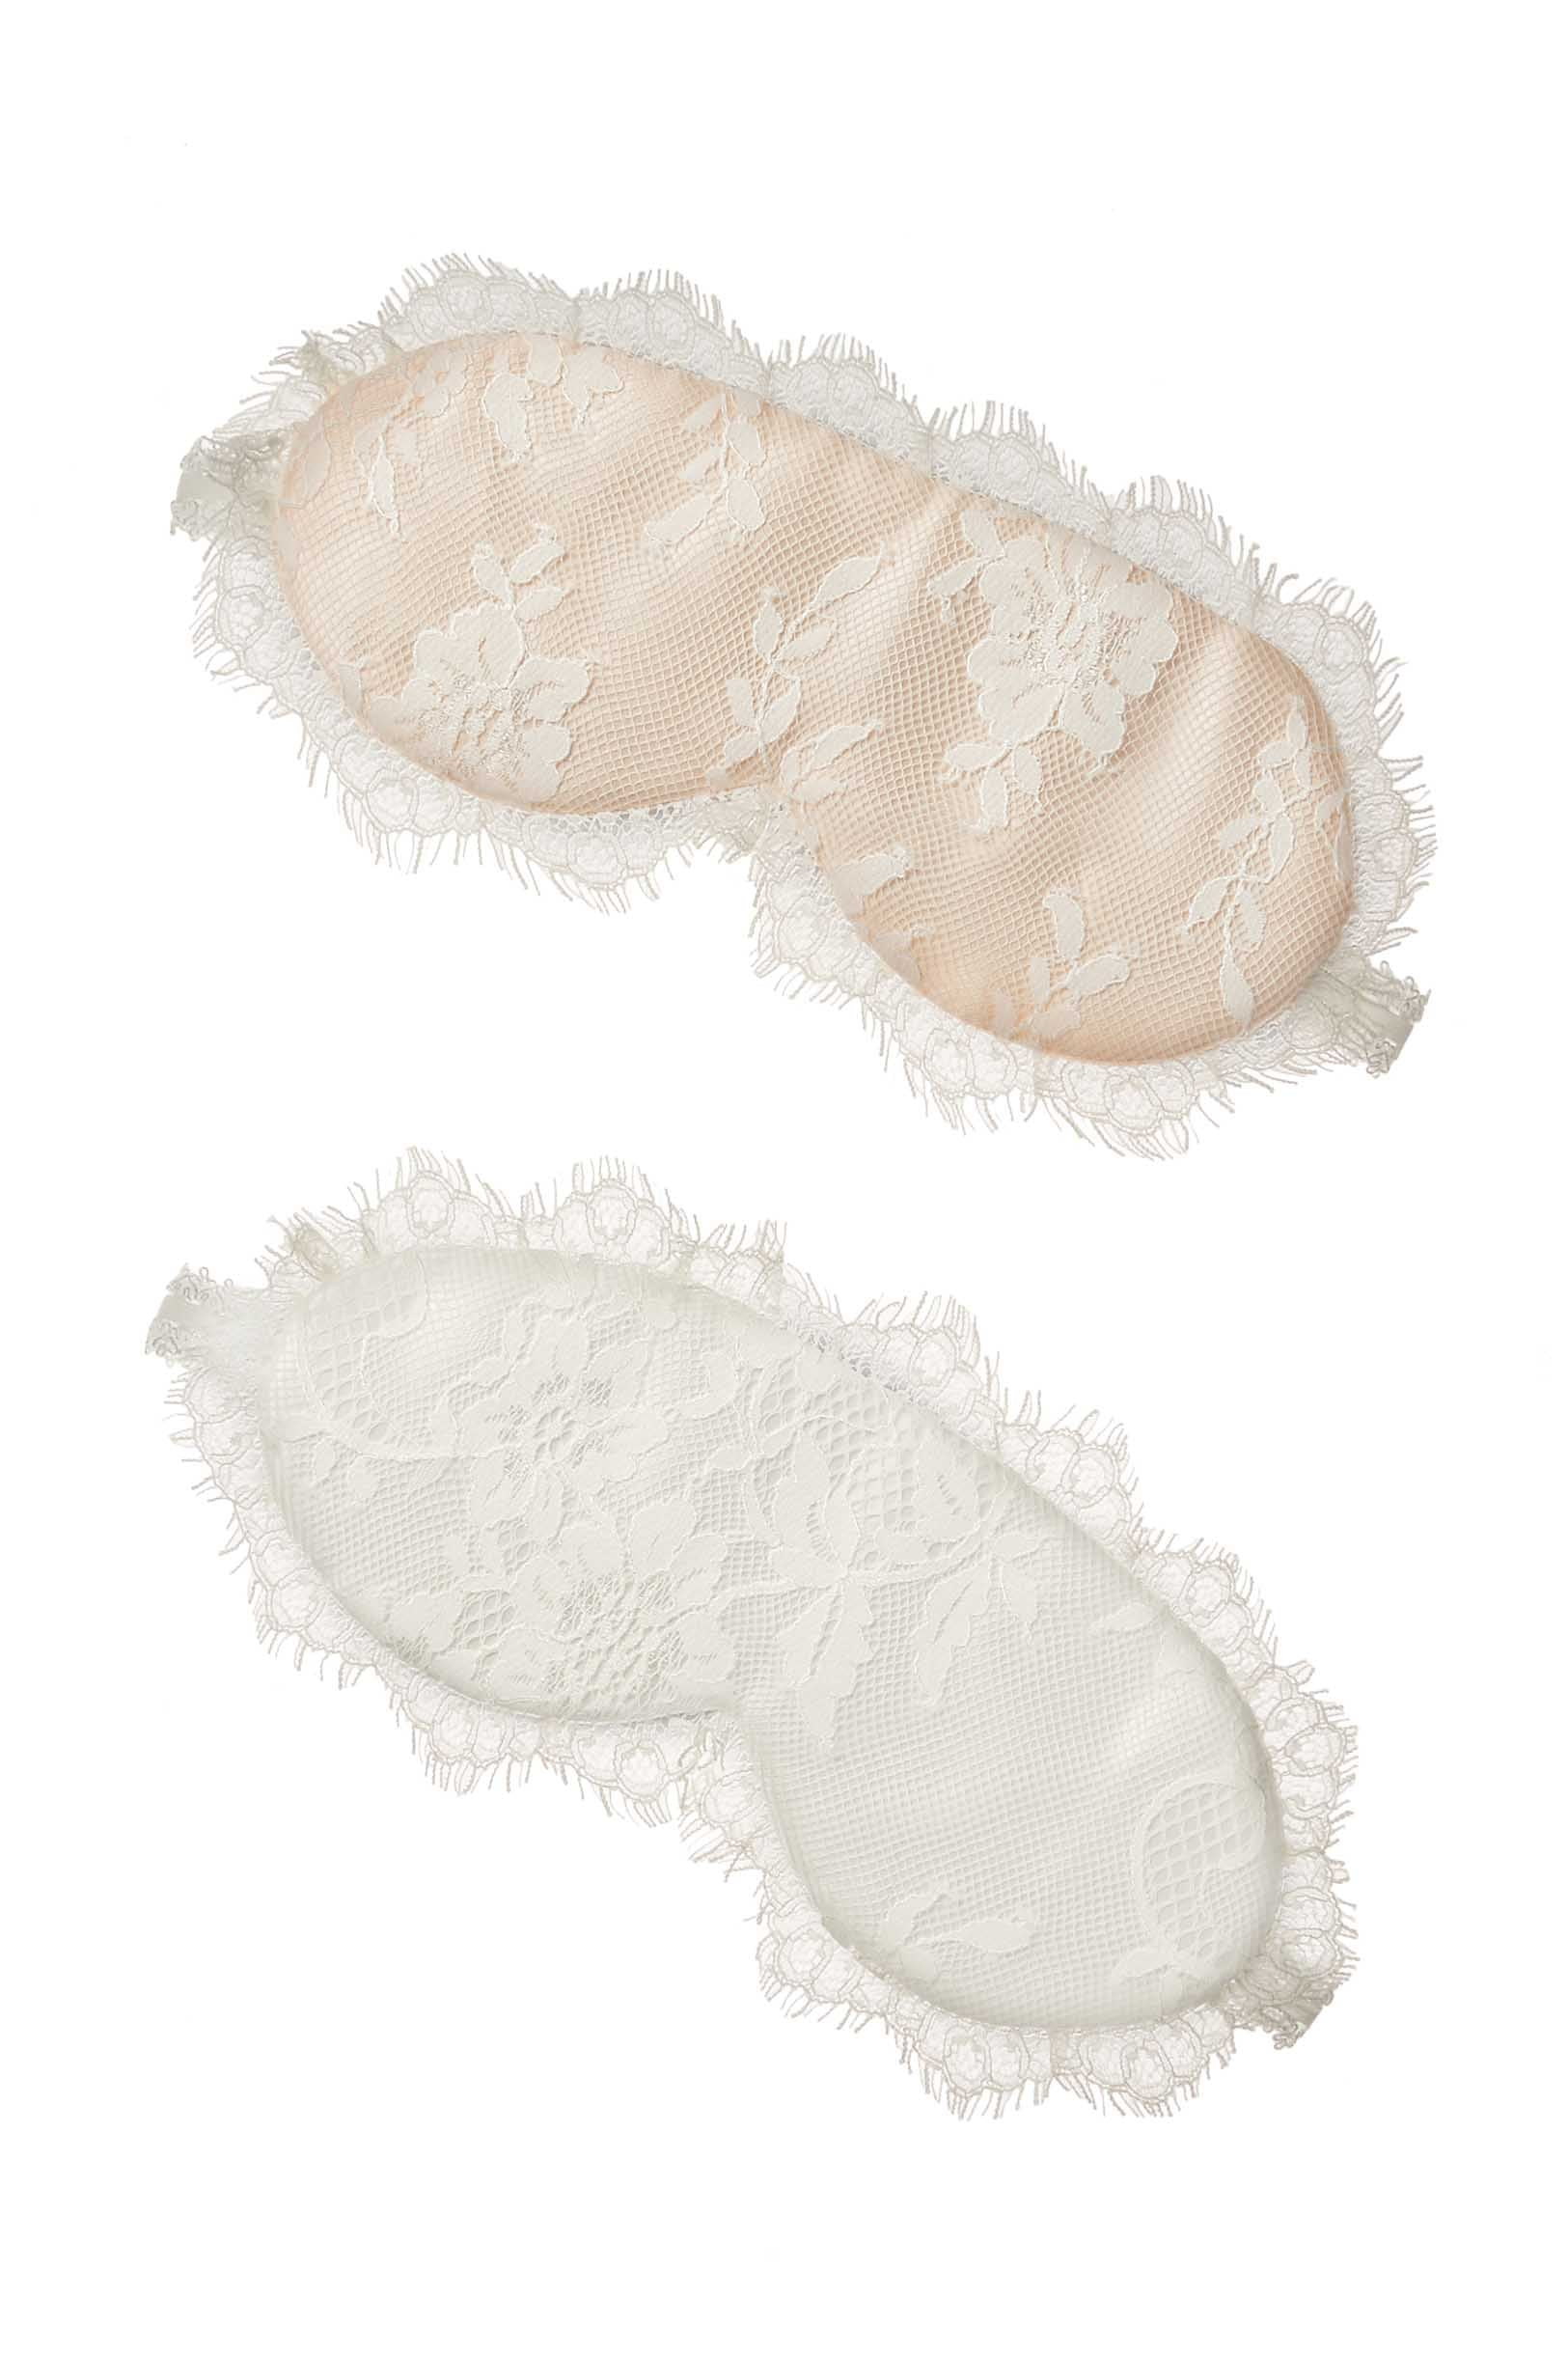 Swan Queen lace & silk Sleep mask in Ivory or Blush pink